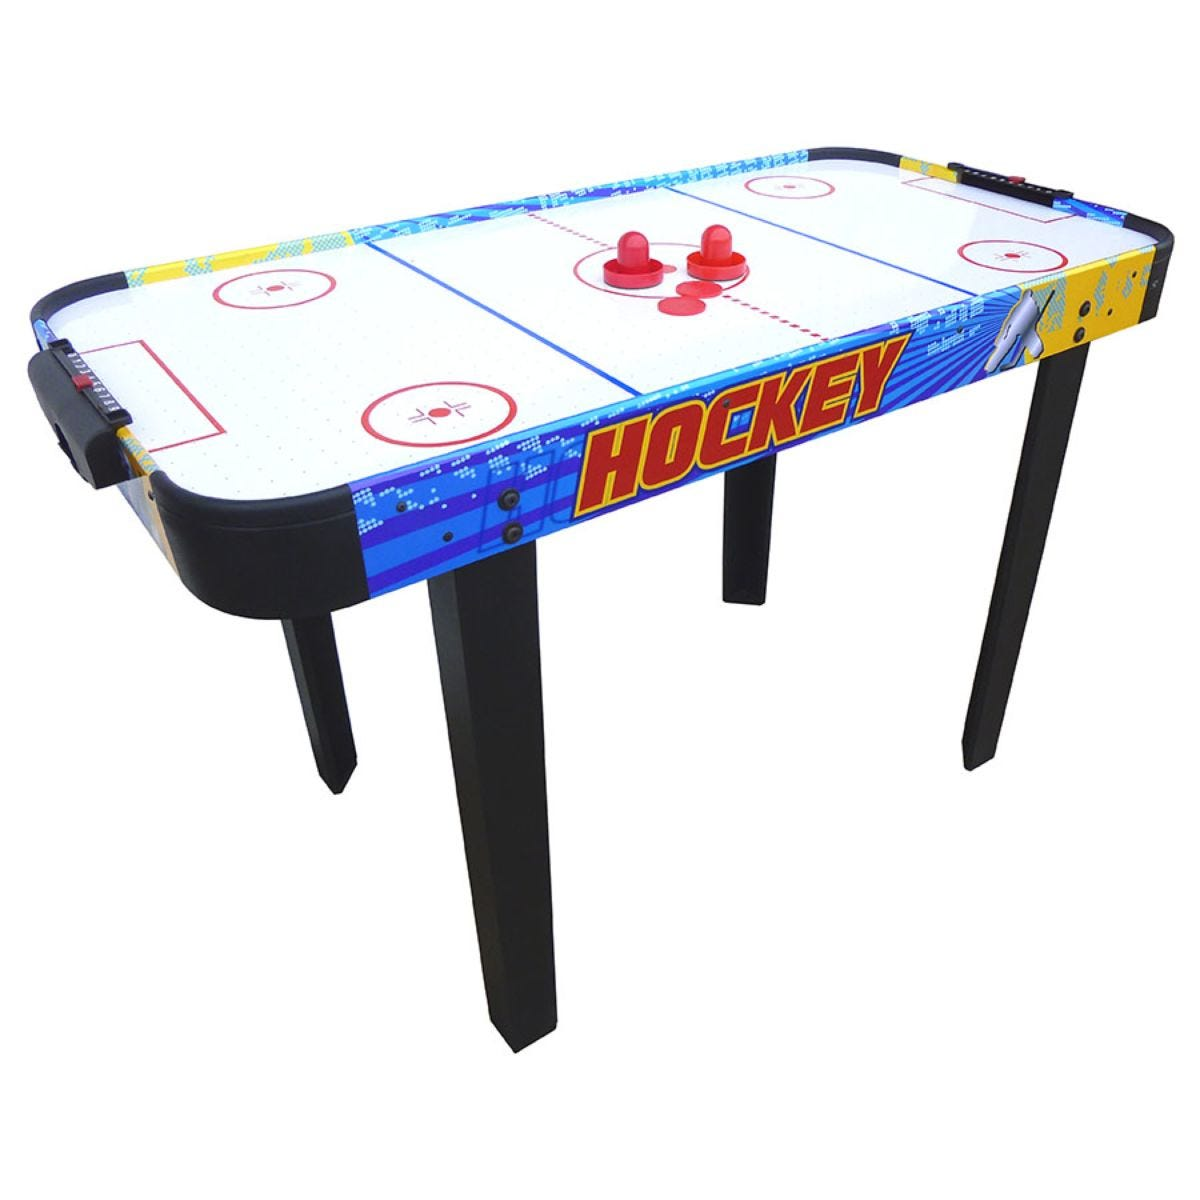 Mightymast Whirlwind 4ft Air Hockey Table